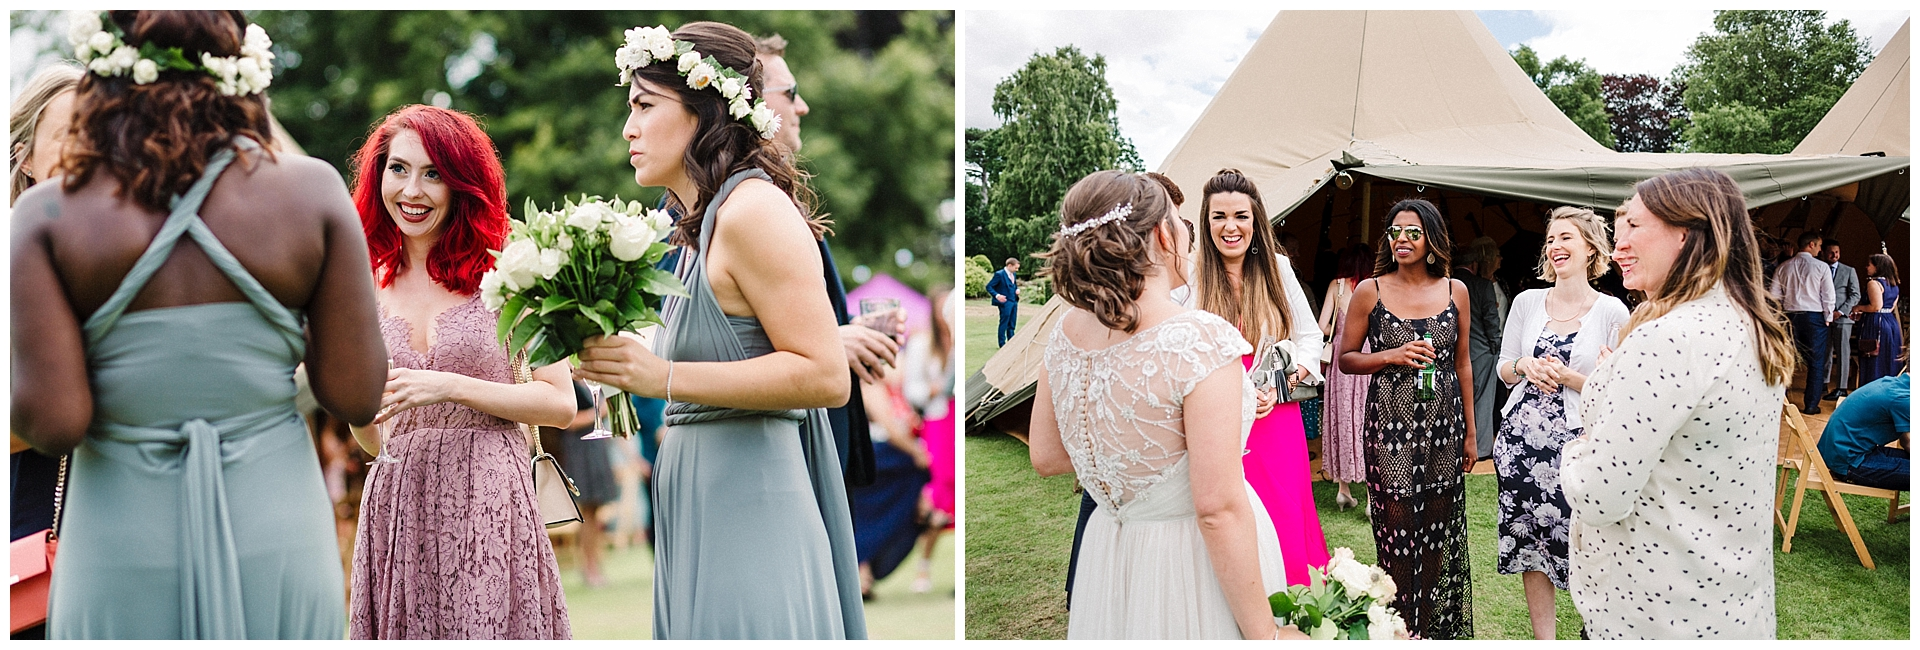 wedding guests talking in the garden at scampston hall